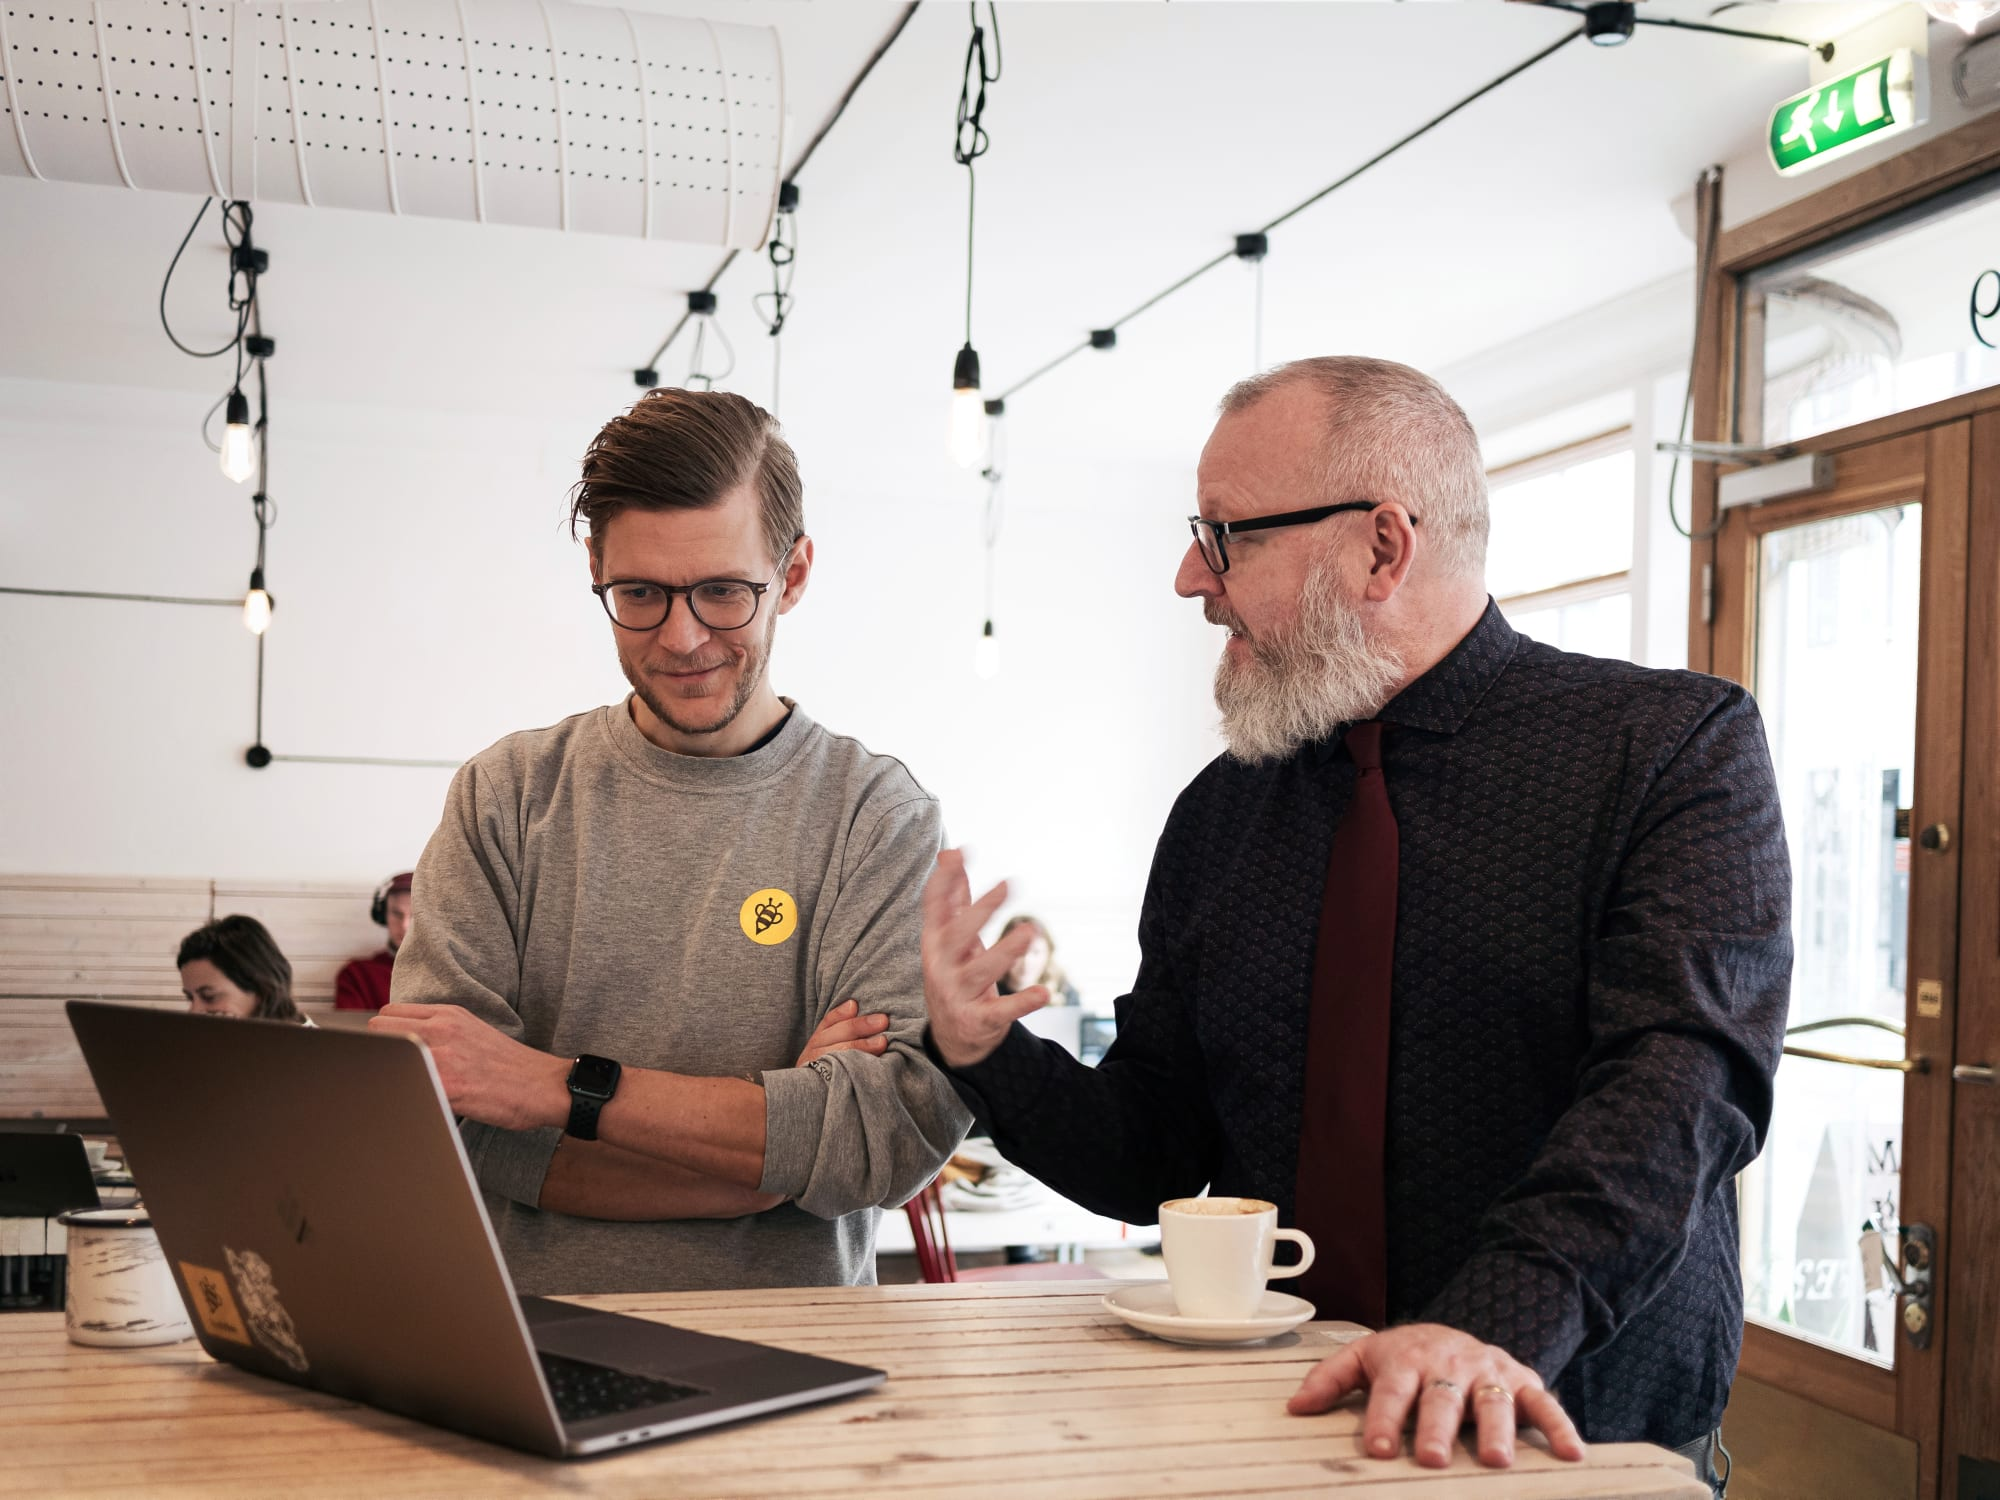 Djäkne Startup Studio supports its portfolio startups with expertise within corporate governance, business strategy, financing, tech, organization, design and communications.